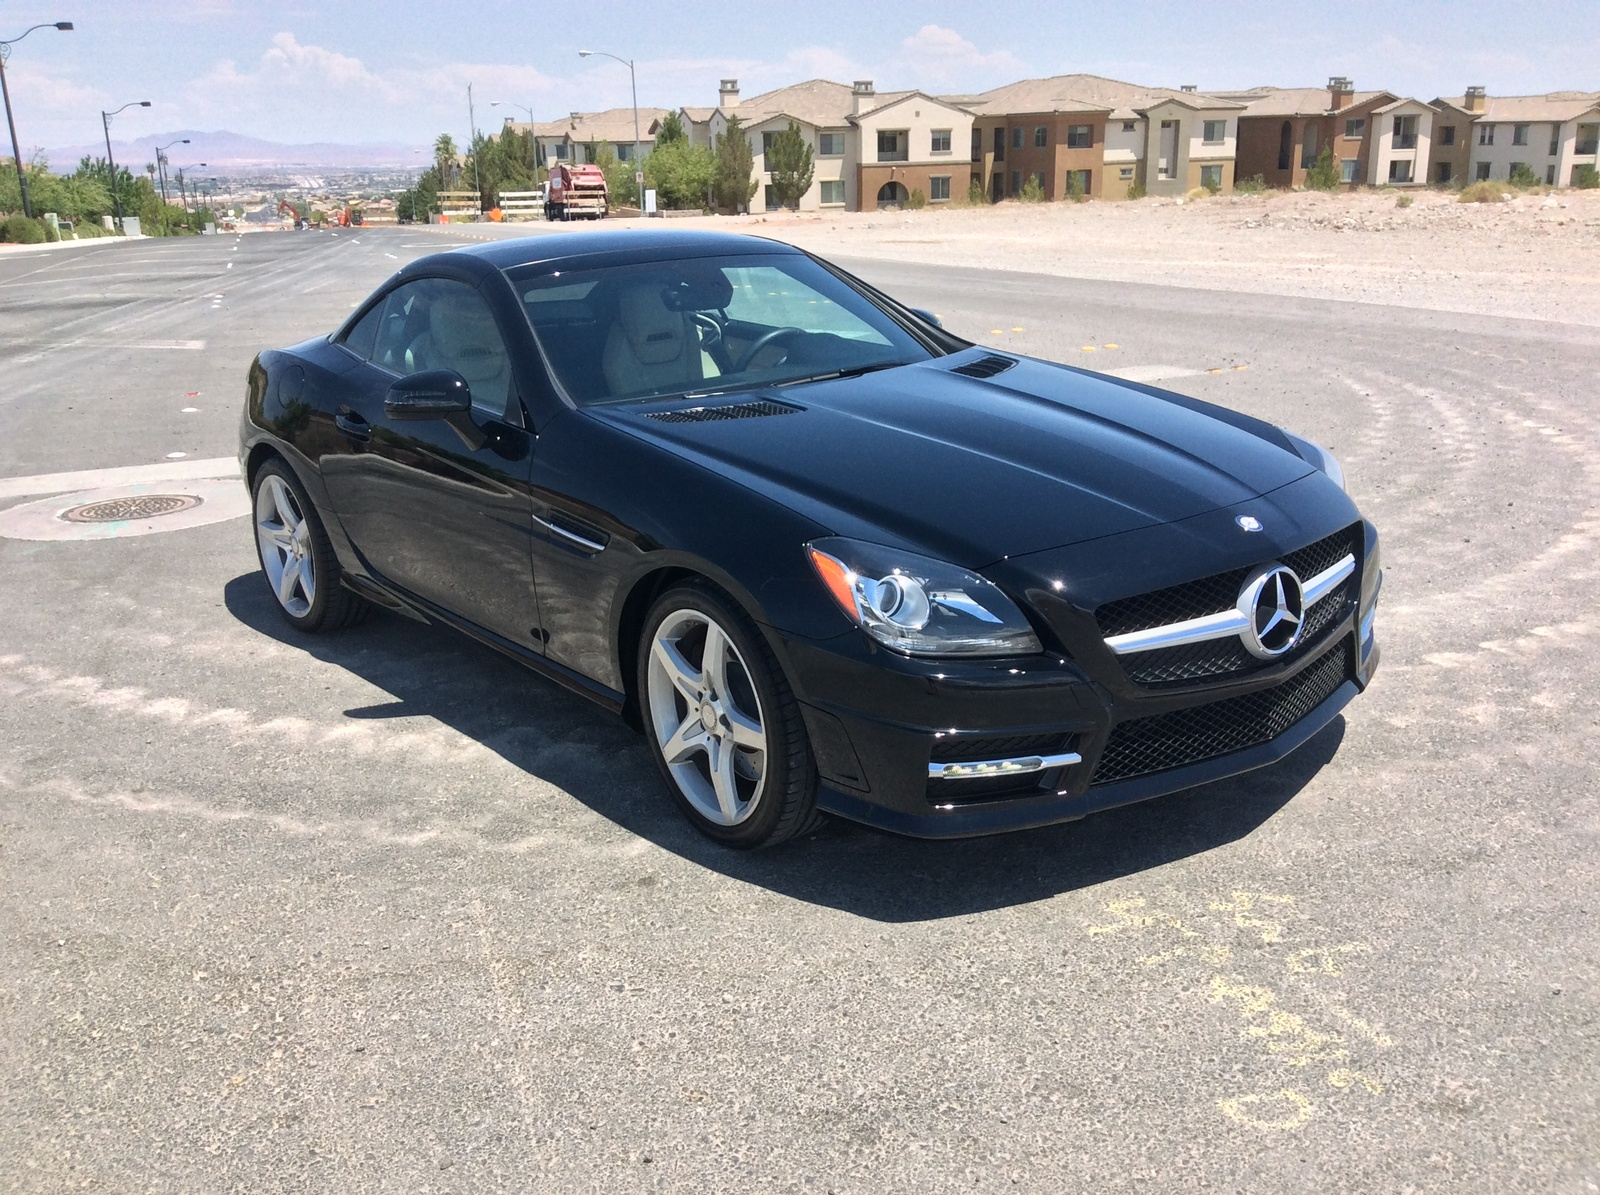 Mercedes-Benz SLK-Class Questions - How do I repost my ad - CarGurus